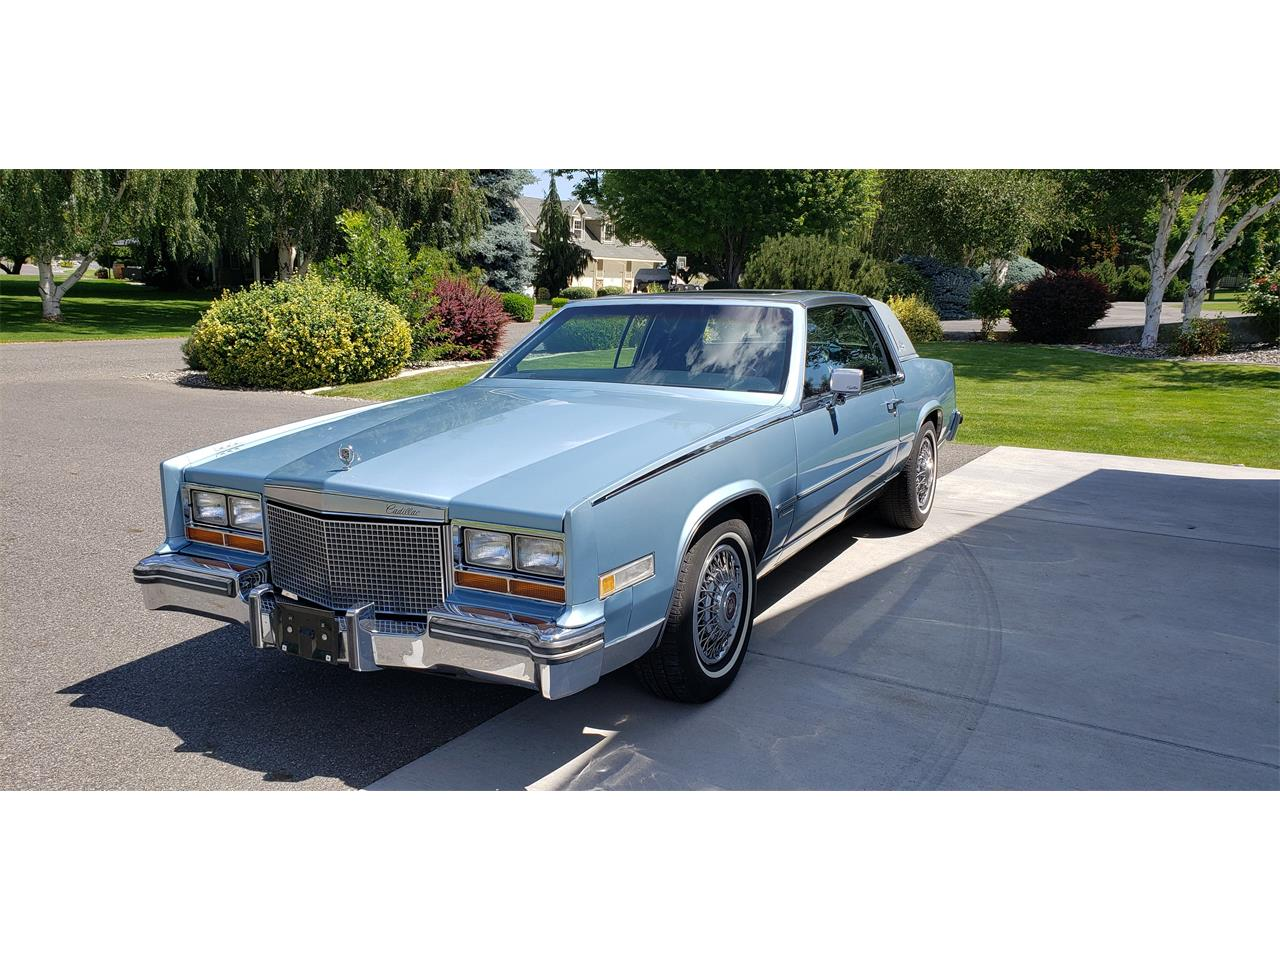 1981 cadillac eldorado biarritz for sale in kennewick wa classiccarsbay com 1981 cadillac eldorado biarritz for